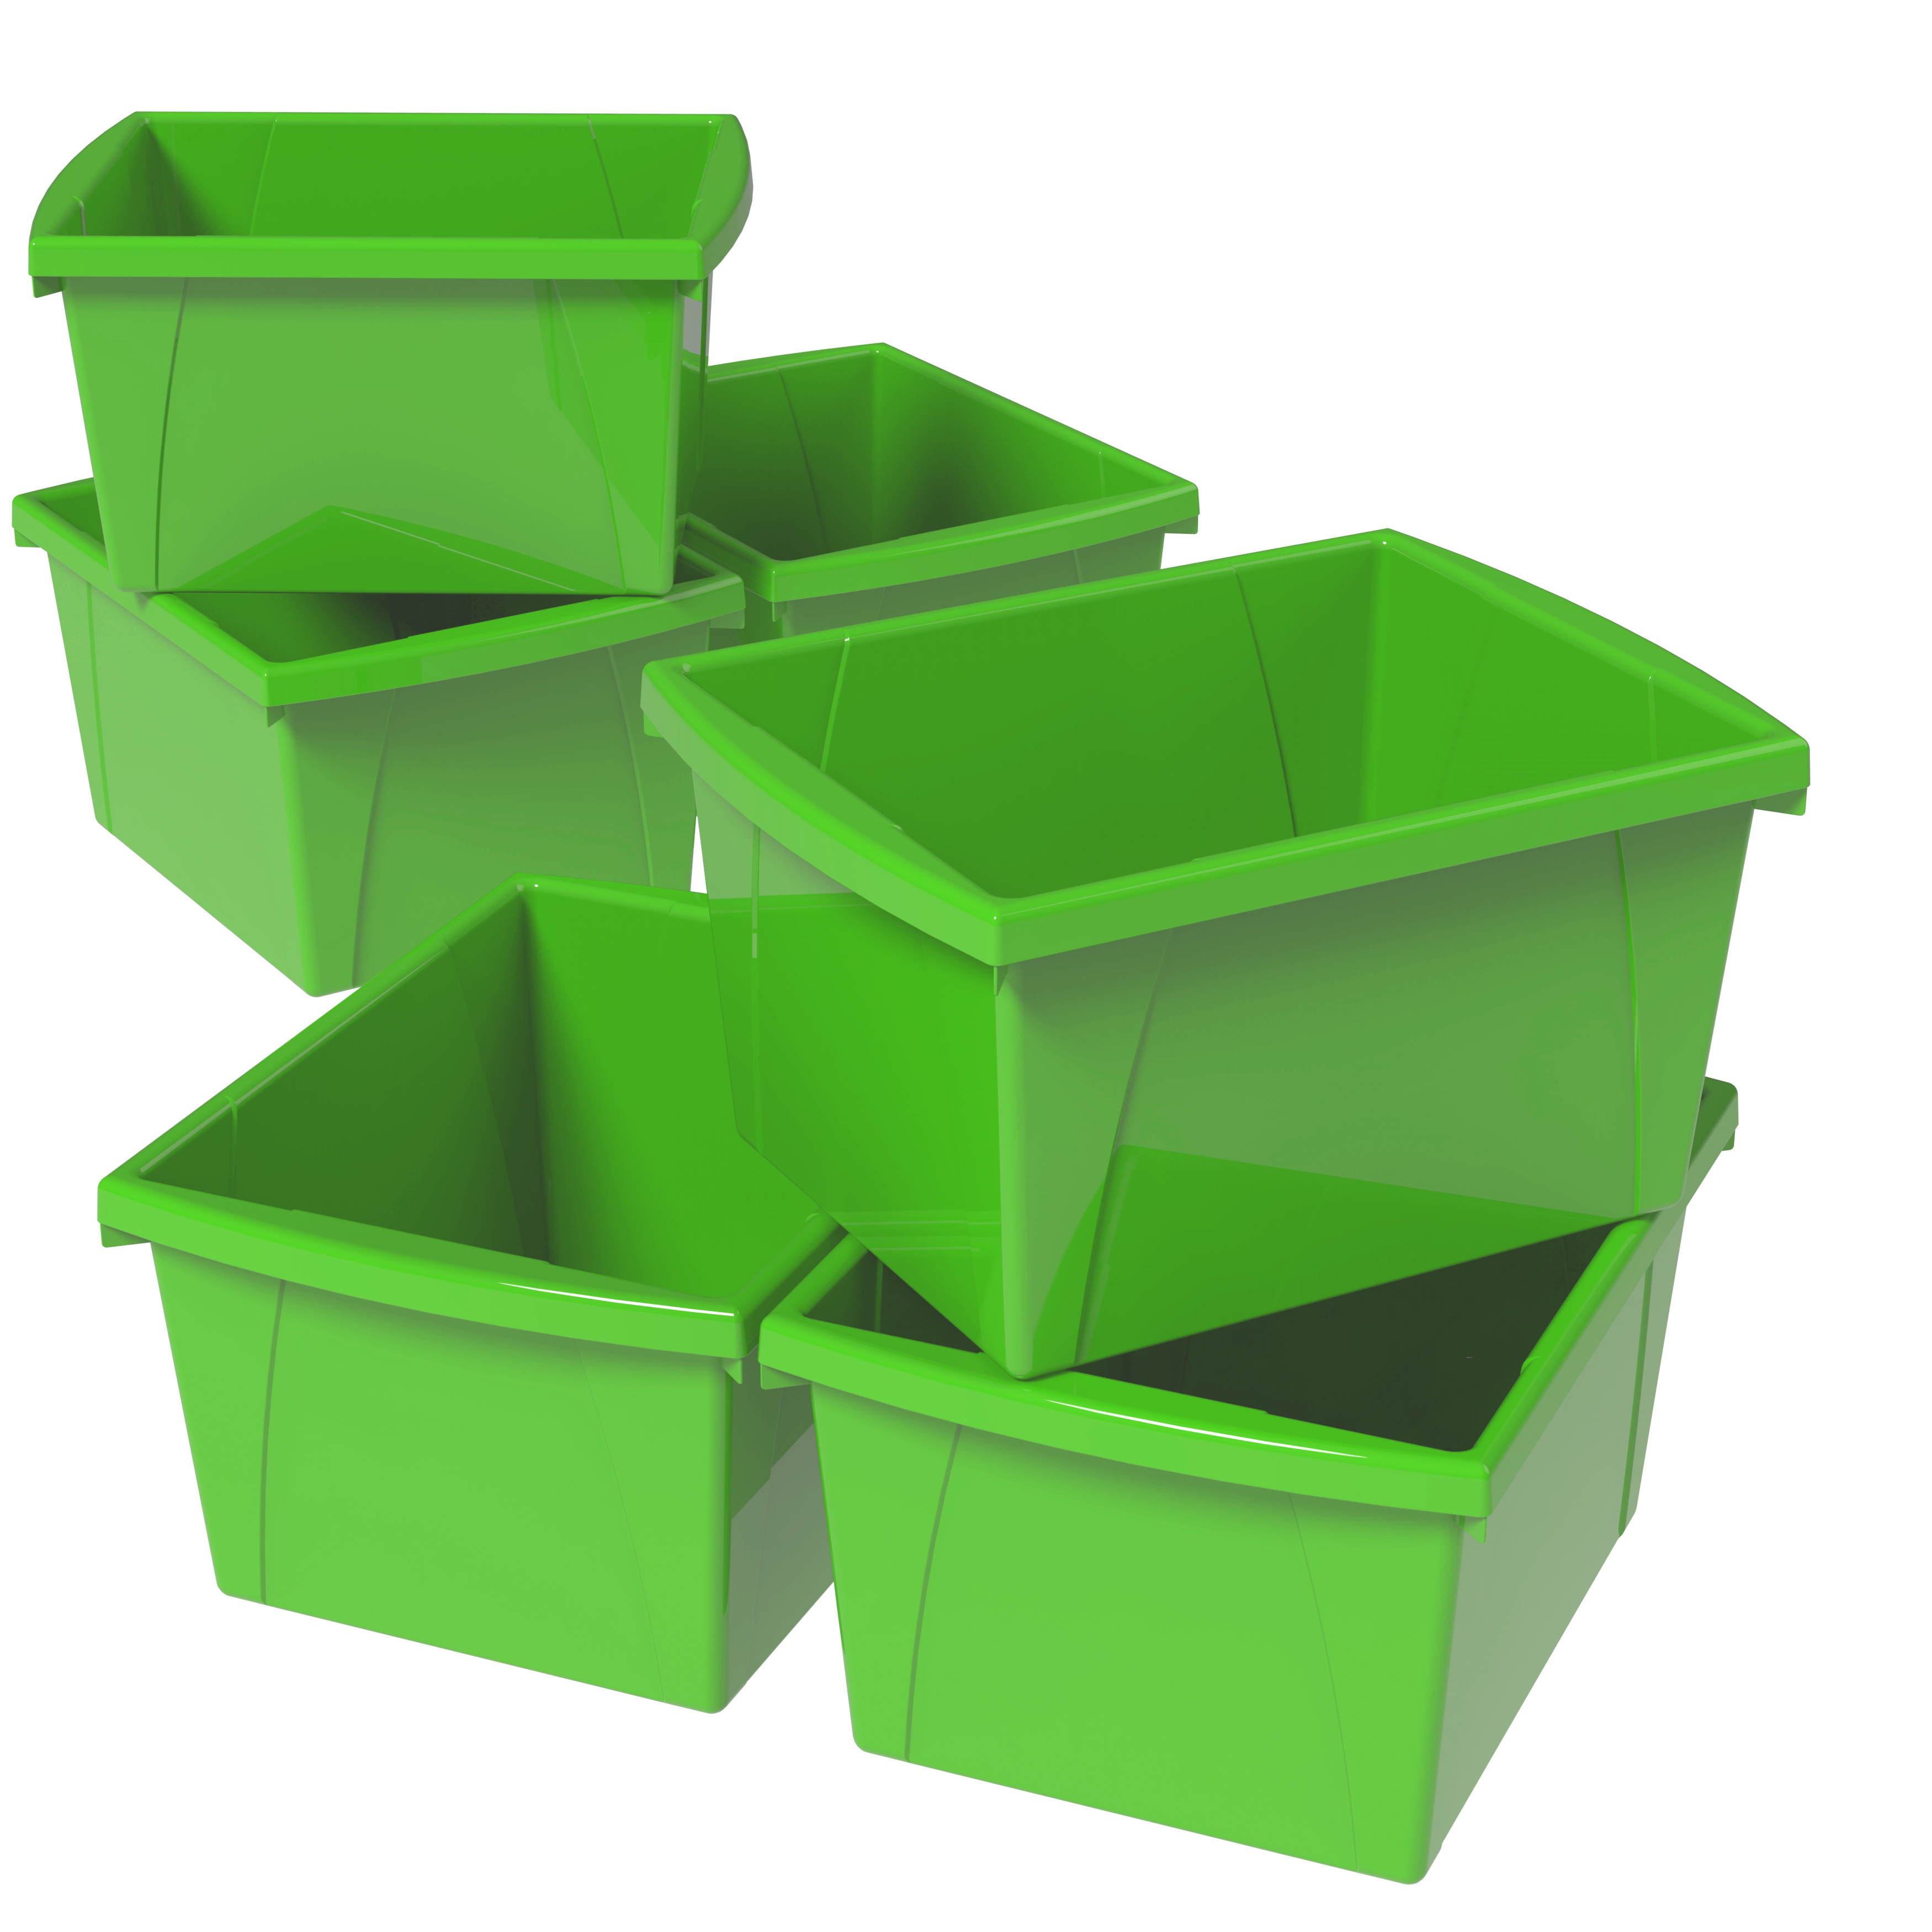 Storex 4 Gallon/15L Classroom Storage Bin,Green (6 units/pack)